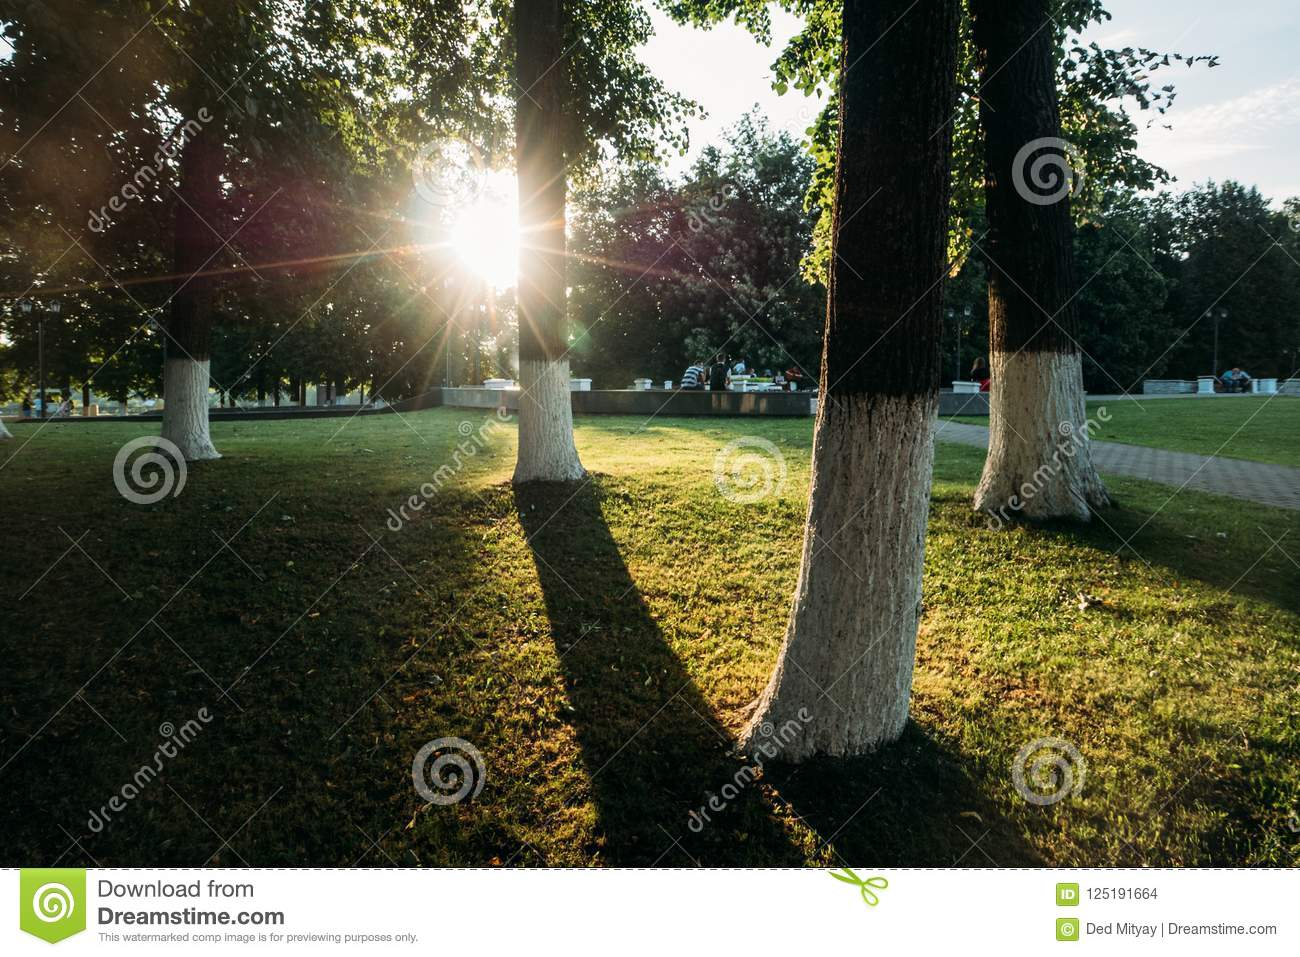 Green trees and grass in public city park and sunlight of sunset sun